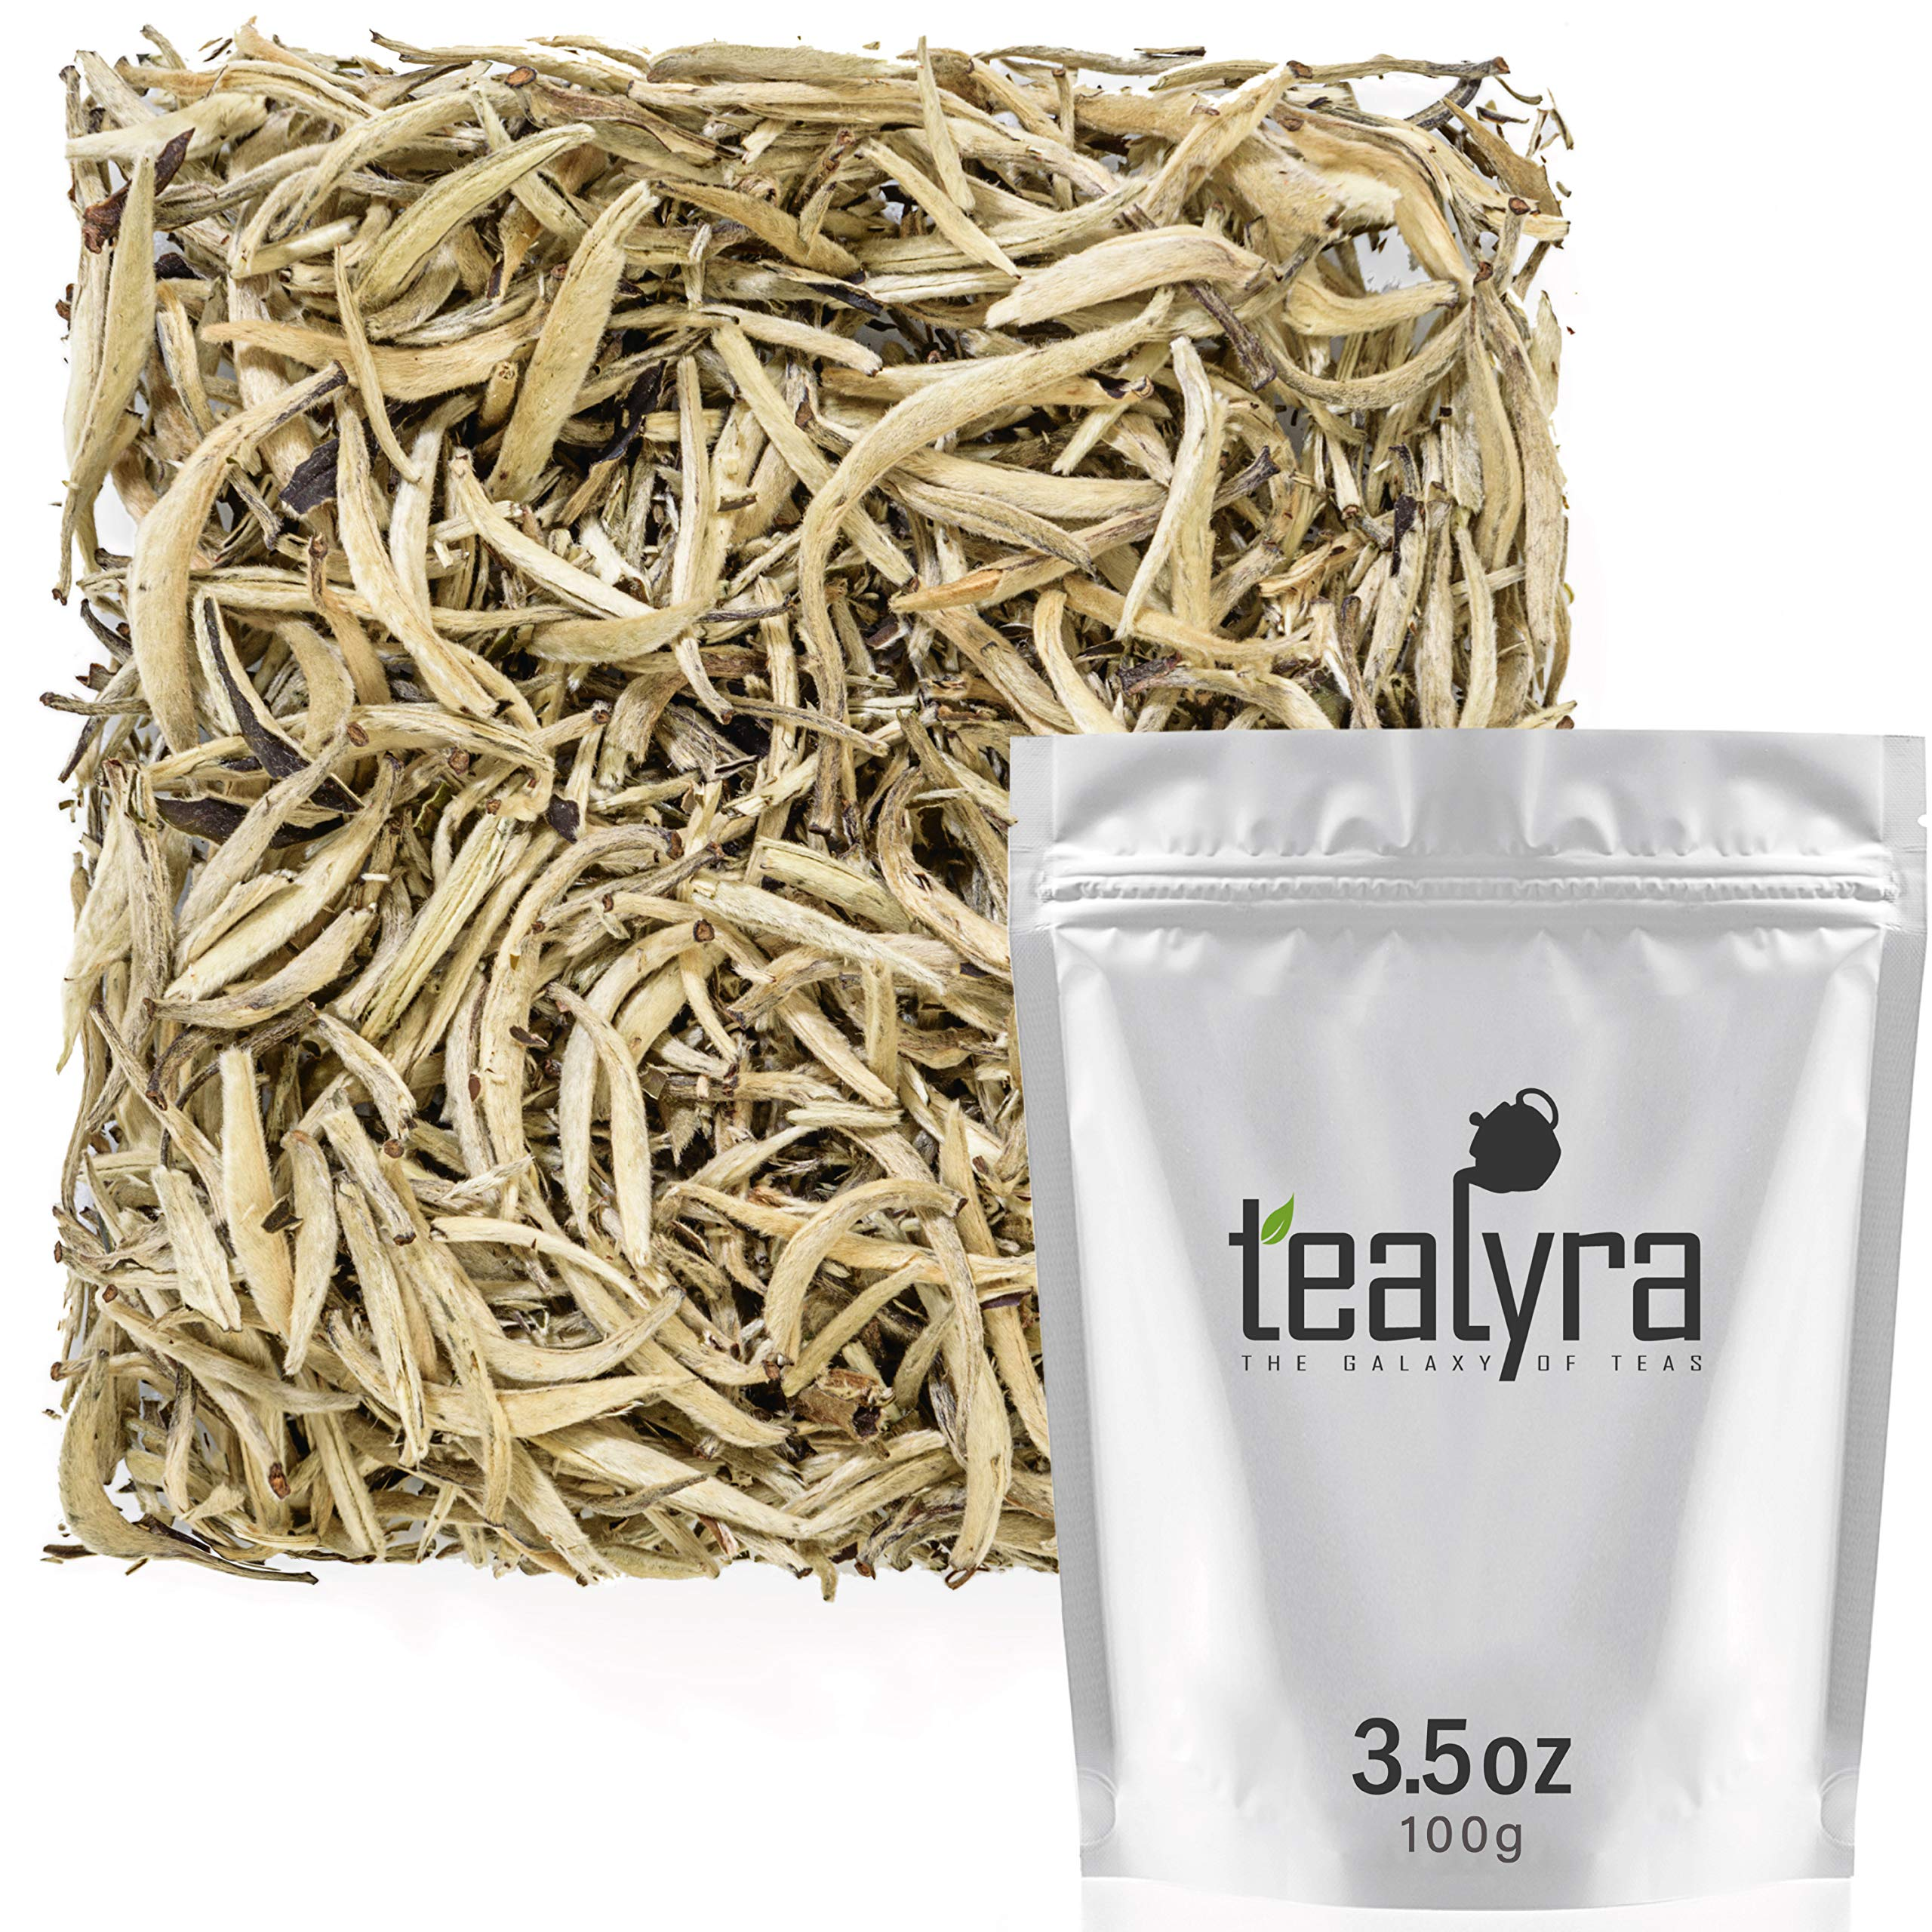 Tealyra - Imperial Yunnan Silver Needle - White Loose Leaf Tea - Organically Grown - Caffeine Level Low - 100g (3.5-ounce) by Tealyra